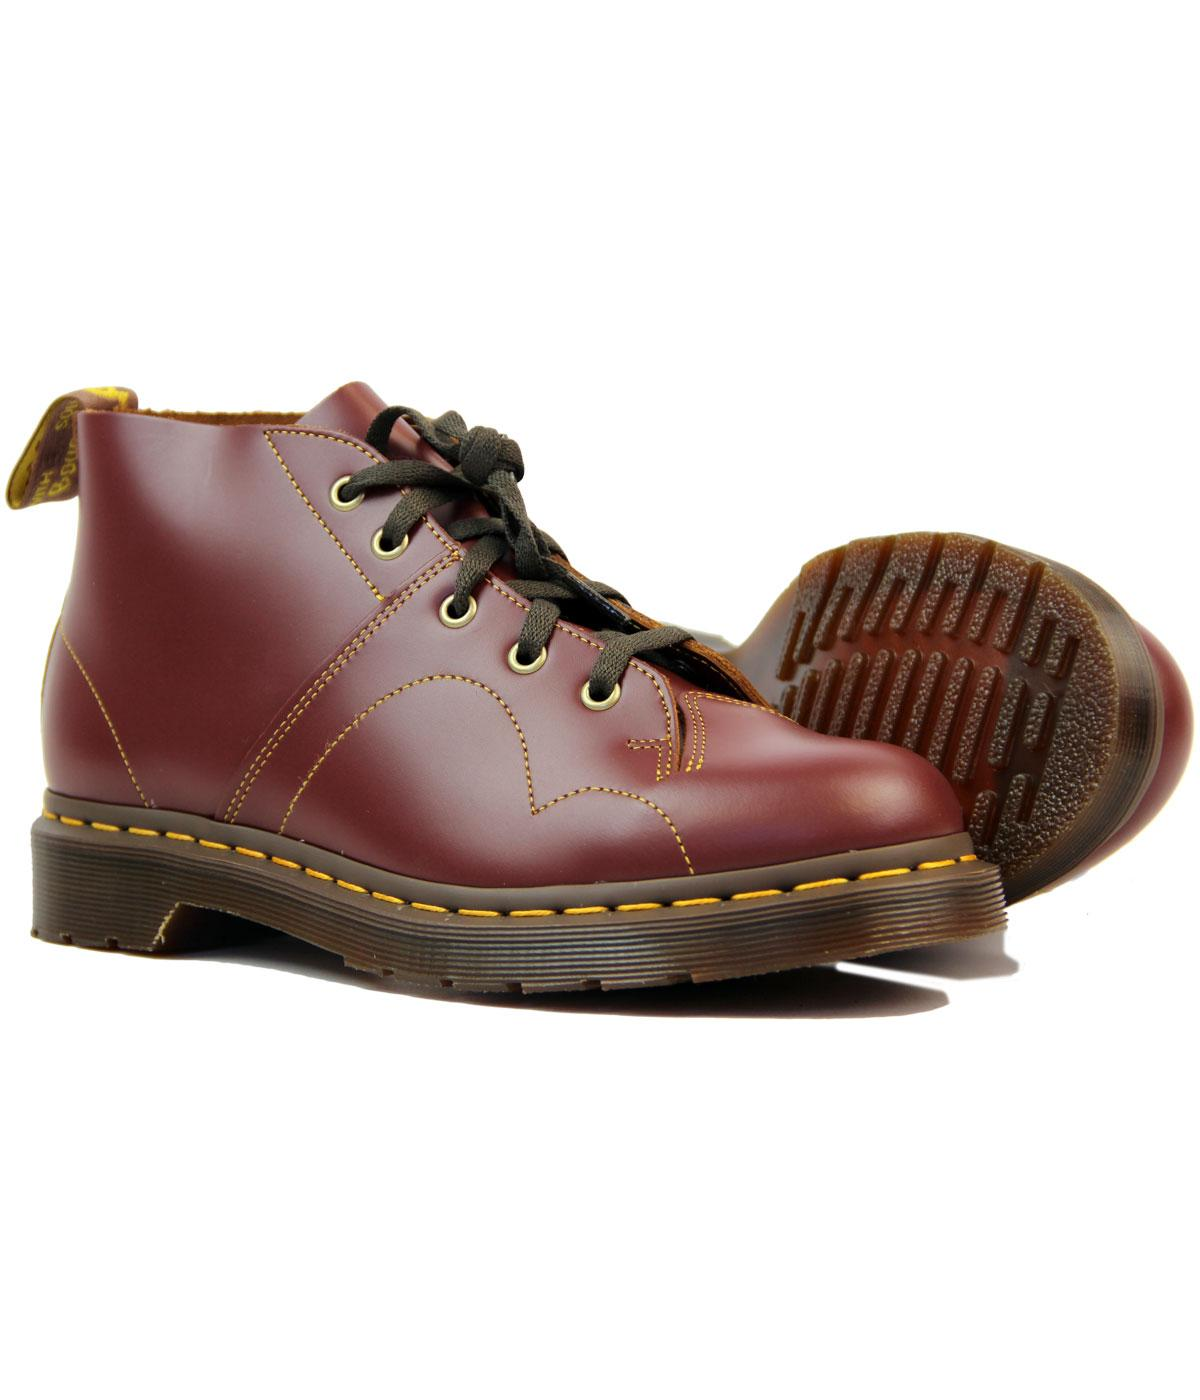 b94cb42f83e21 Dr Martens Church Retro Mod Smooth Leather Monkey Boots Oxblood